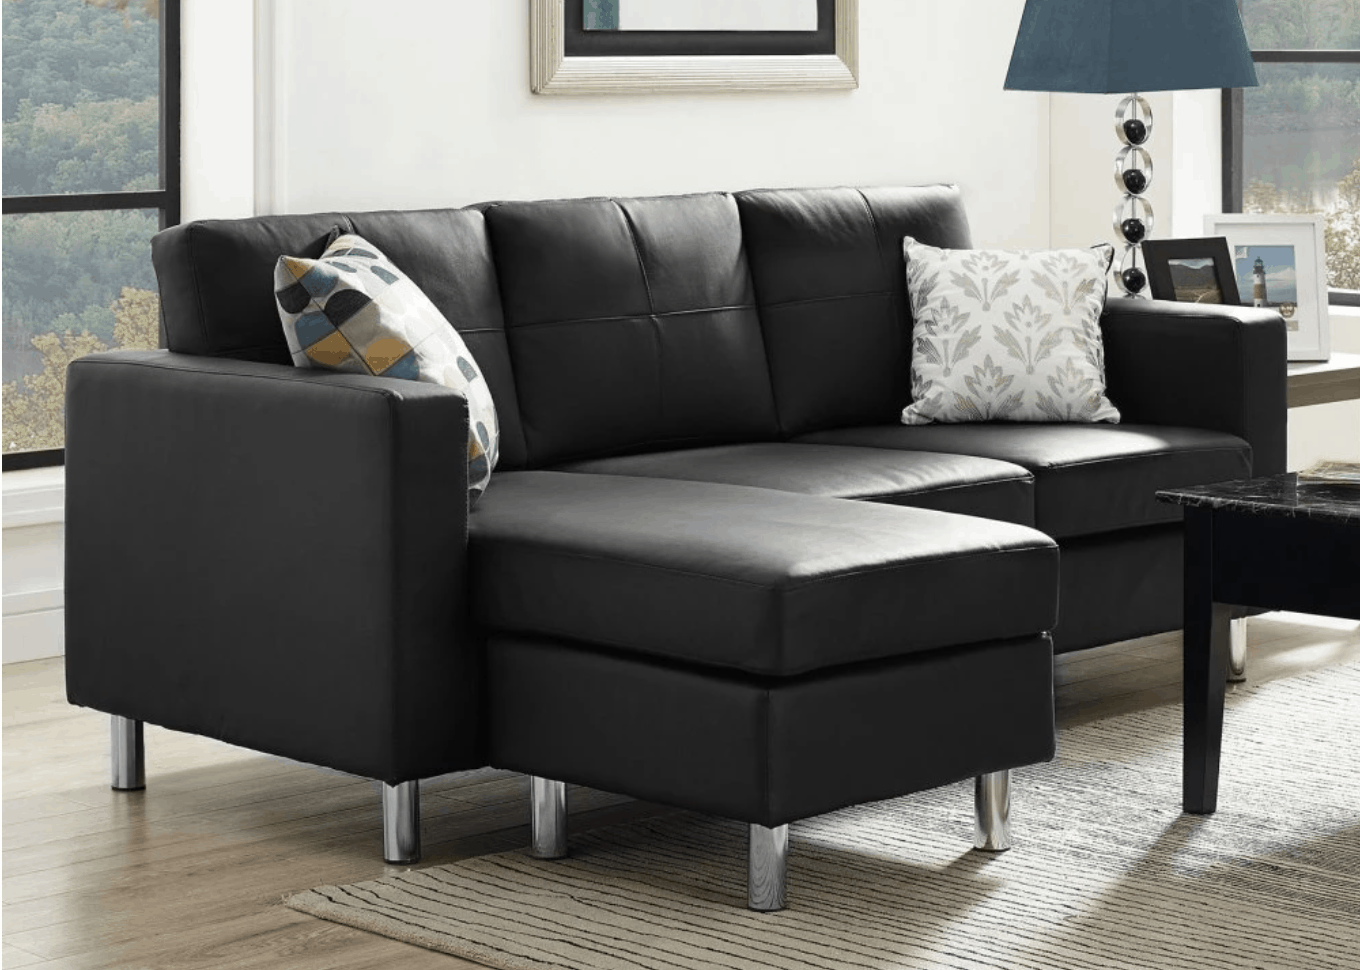 sofas for small es plush sofa cover 75 modern sectional spaces 2019 space saving black